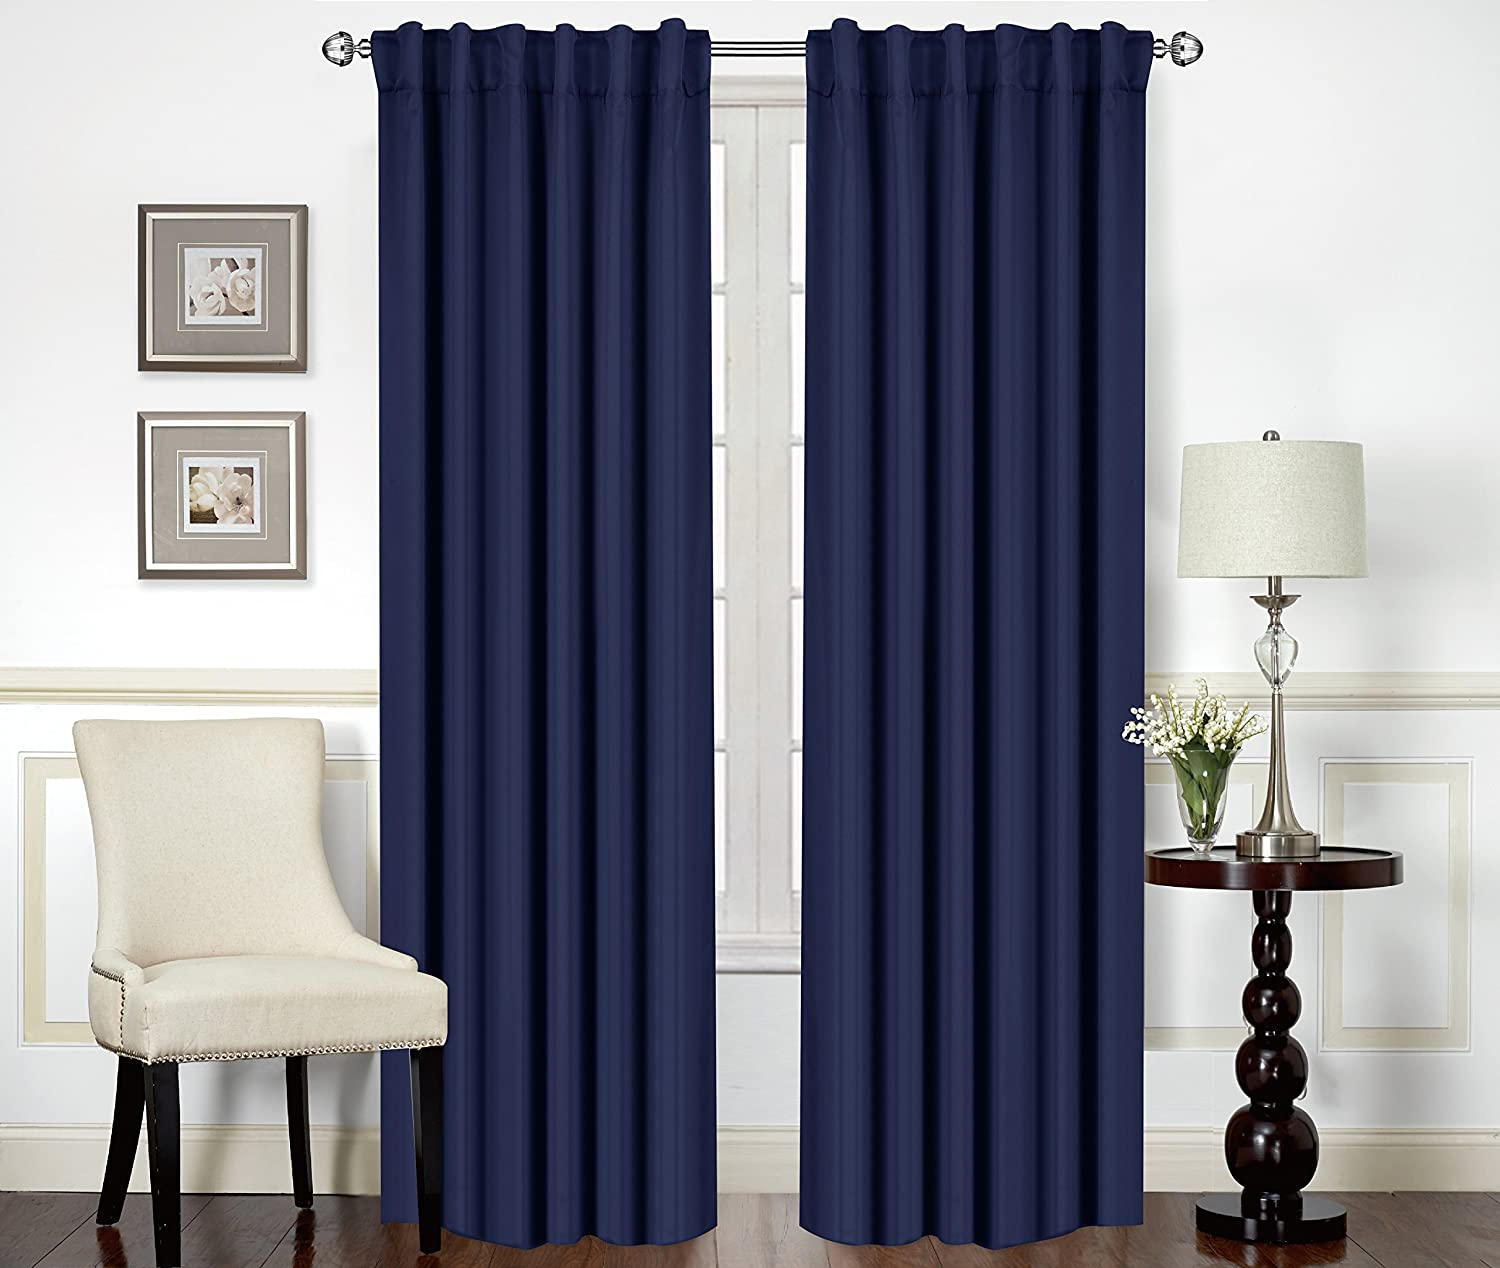 room blackout curtains target amazoncom utopia bedding blackout room darkening and thermal insulating window curtainspanelsdrapes panels set back loops per panel tie